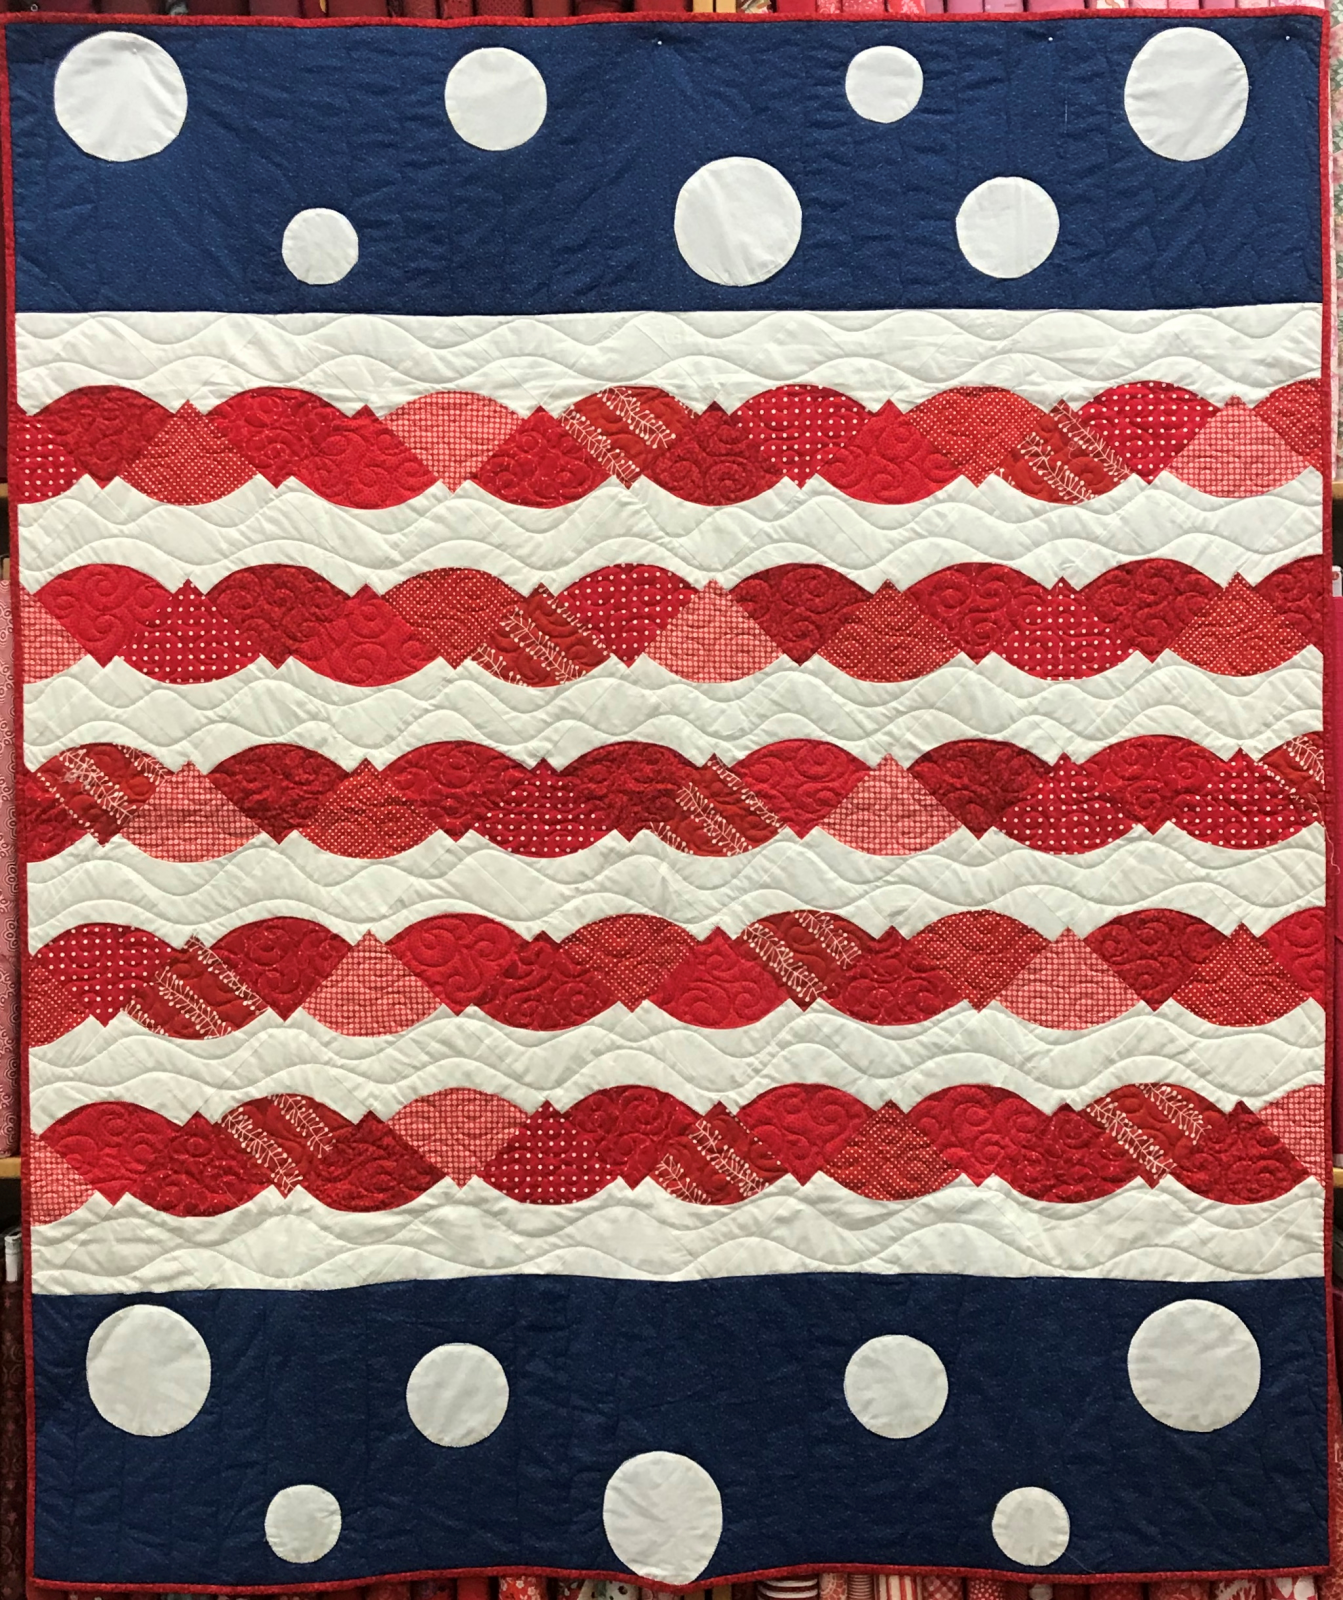 4th of July Quilt 61'x53'